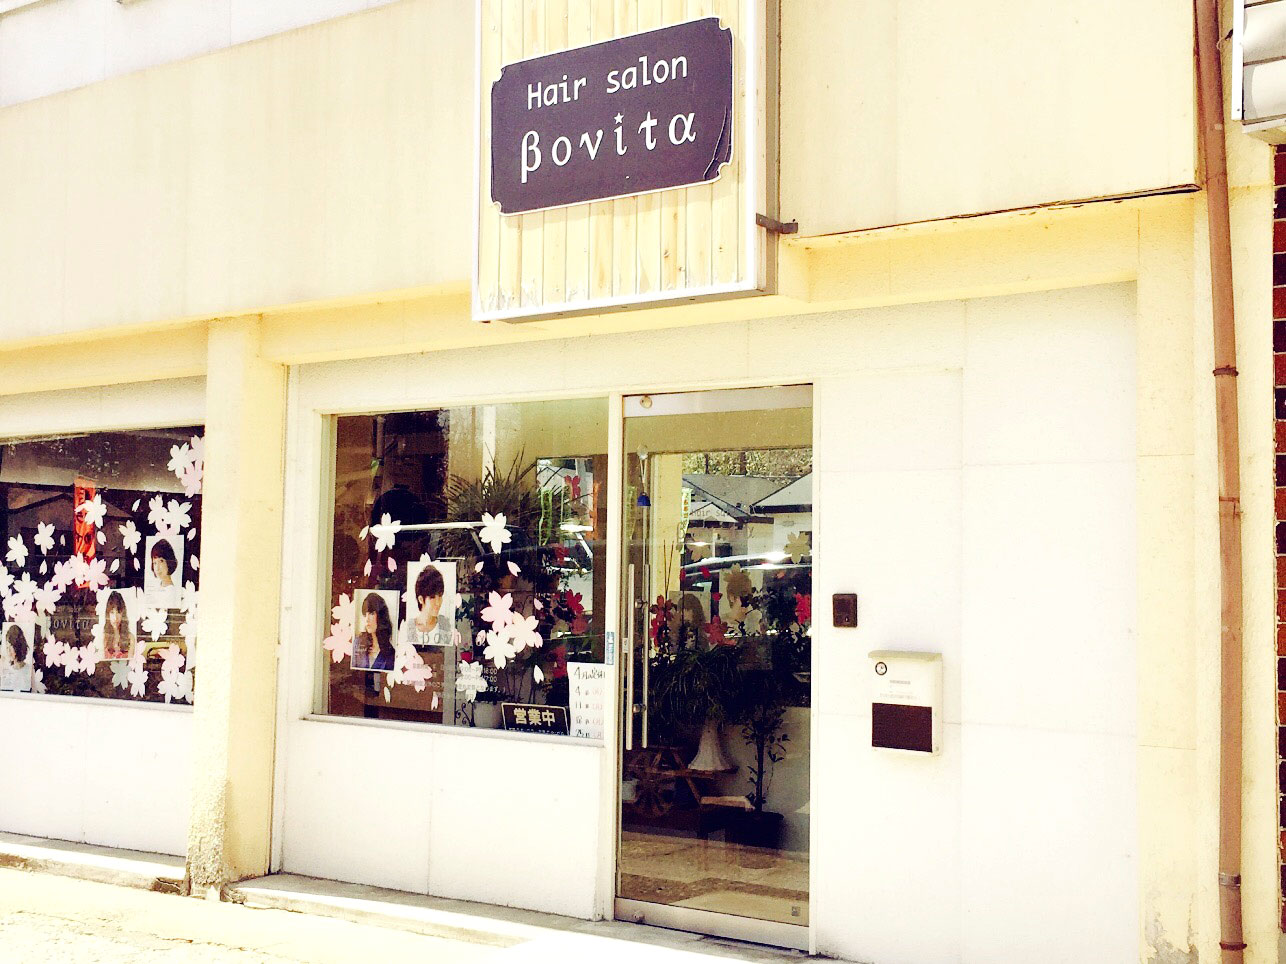 Hairsalon Bonita「ボニータ」